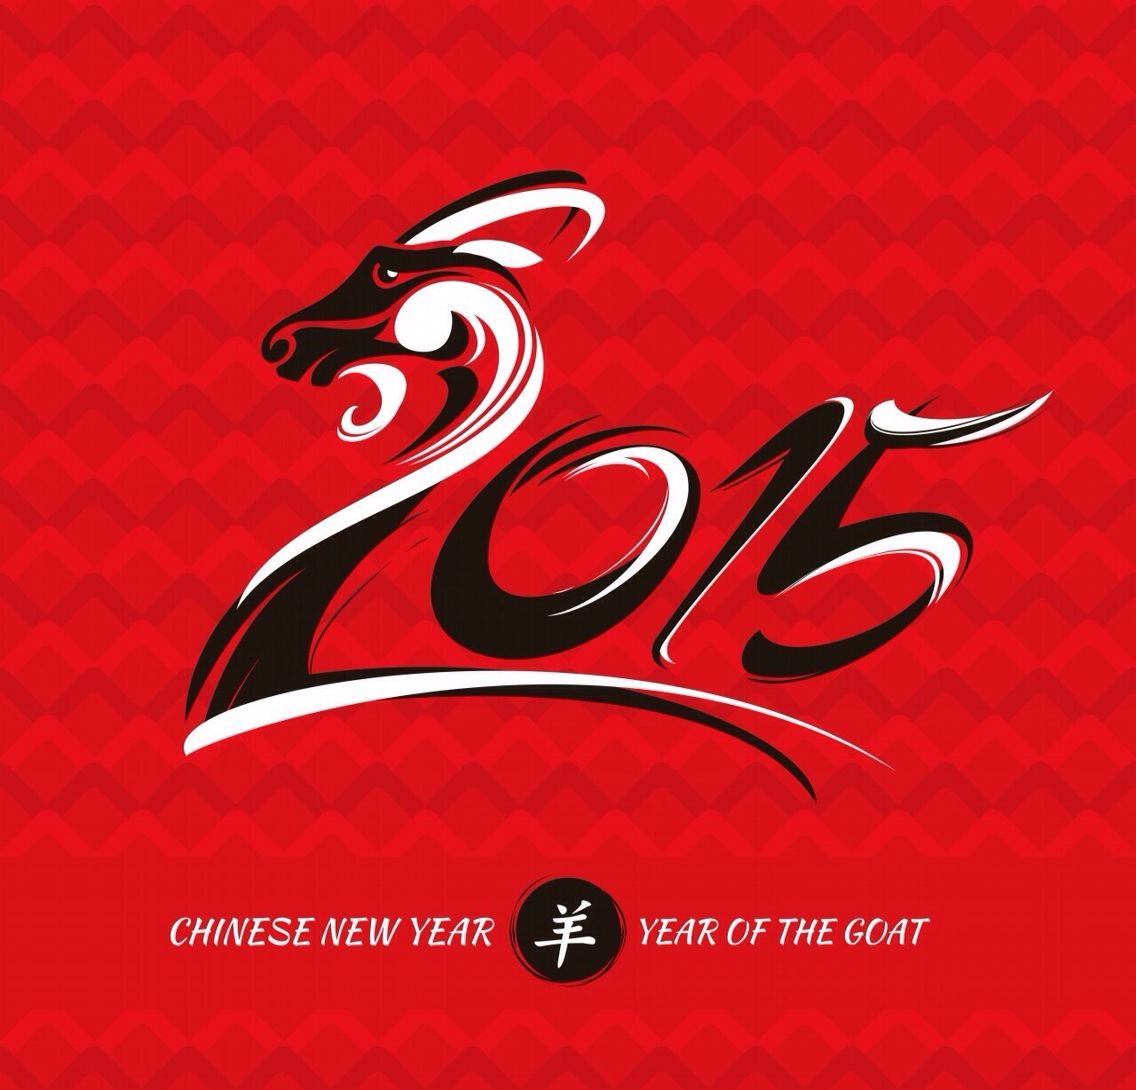 Wishing a happy chinese new year to everyone may 2015 bring you wishing a happy chinese new year to everyone may 2015 bring you happiness and prosperity kristyandbryce Choice Image